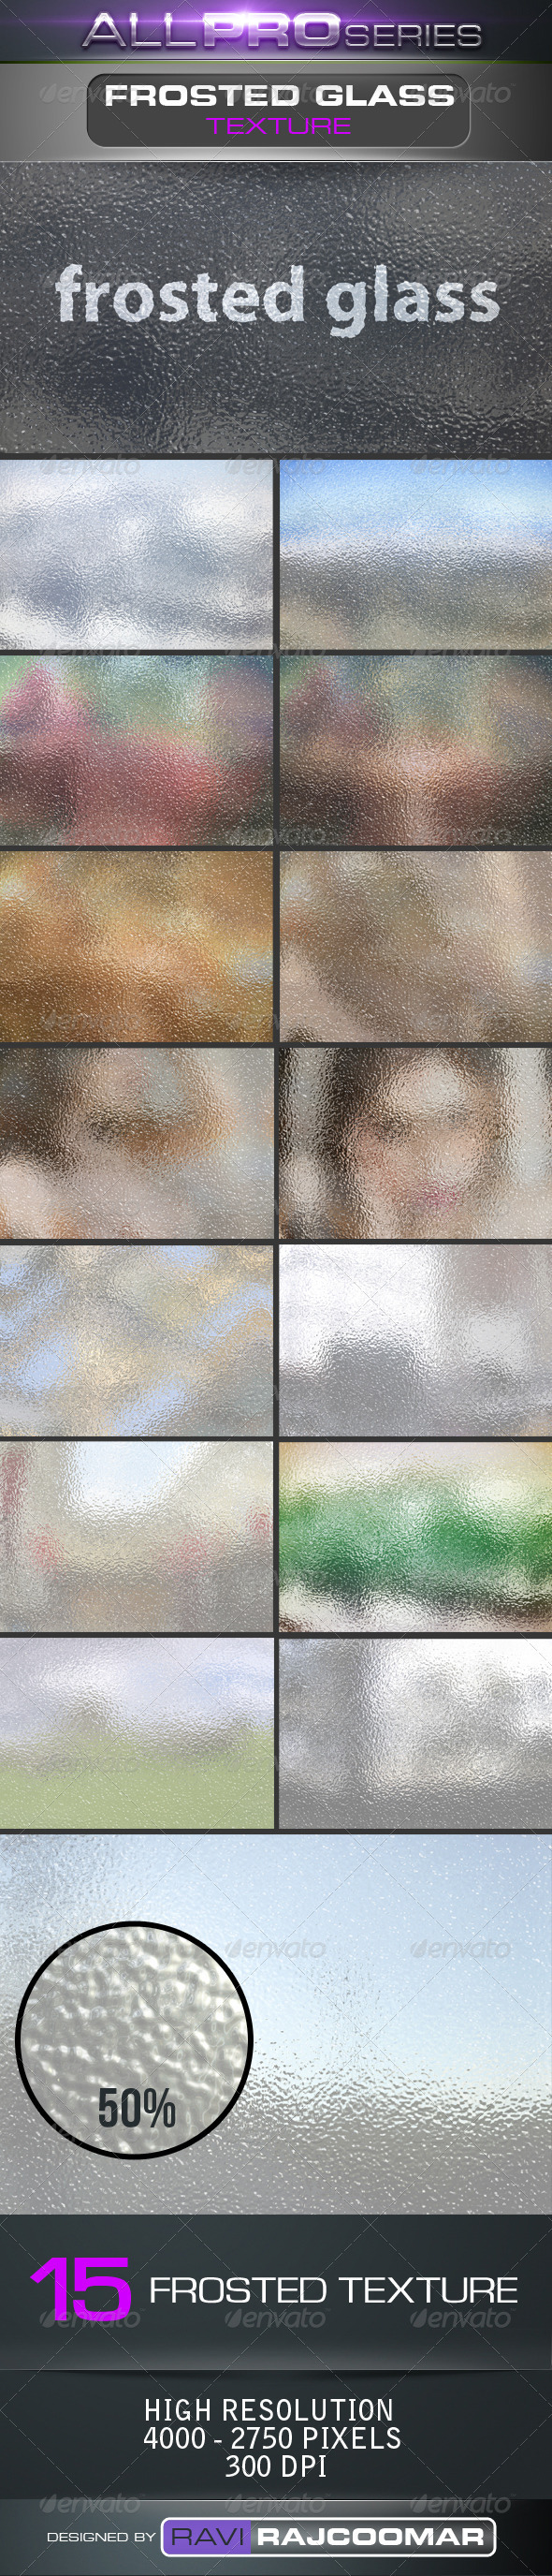 GraphicRiver Frosted Glass Backgrounds 4027095